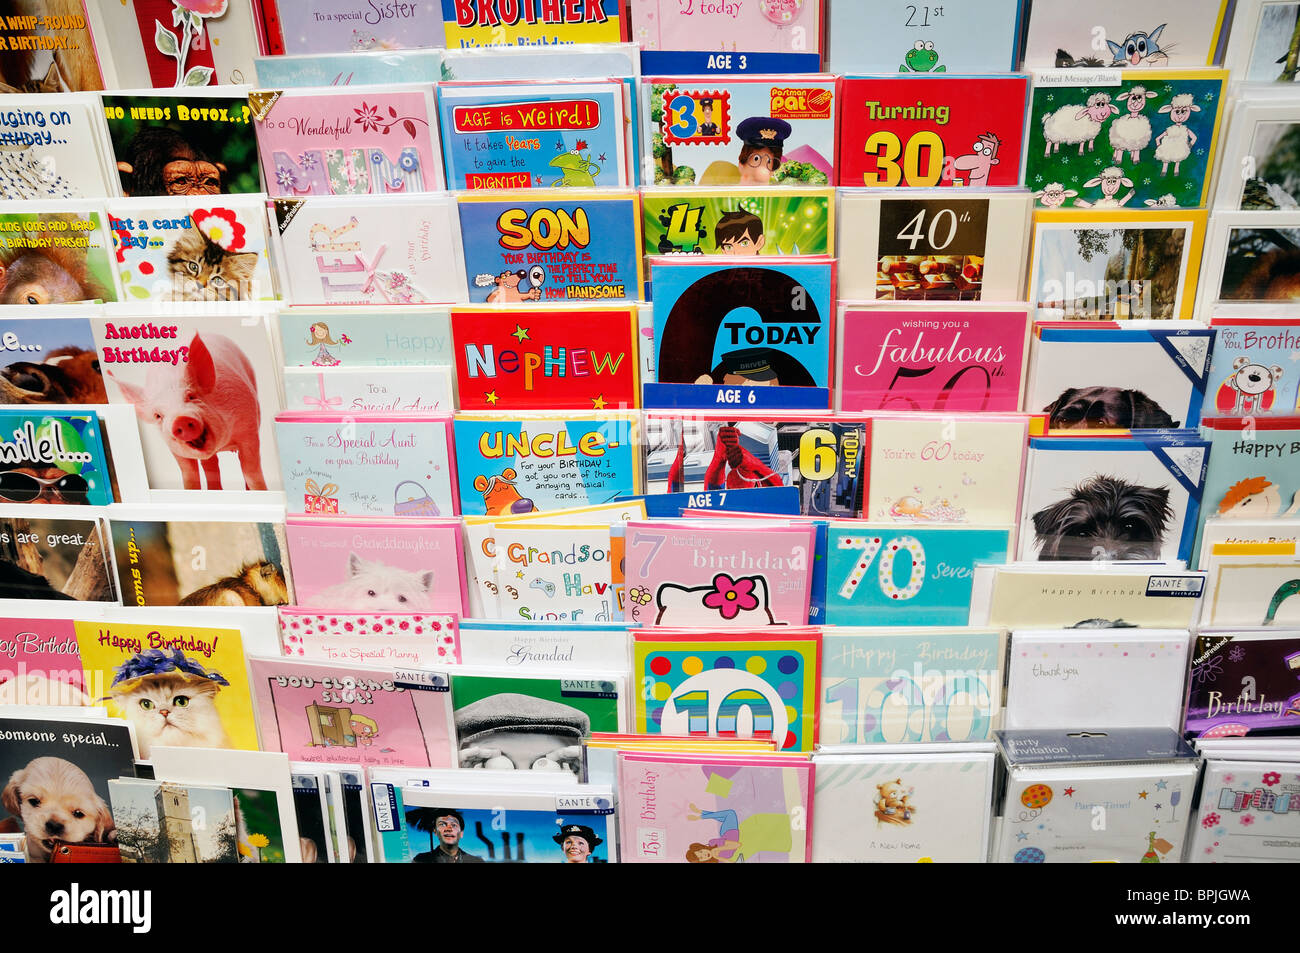 Birthday Cards in a Newsagents, England, UK. - Stock Image